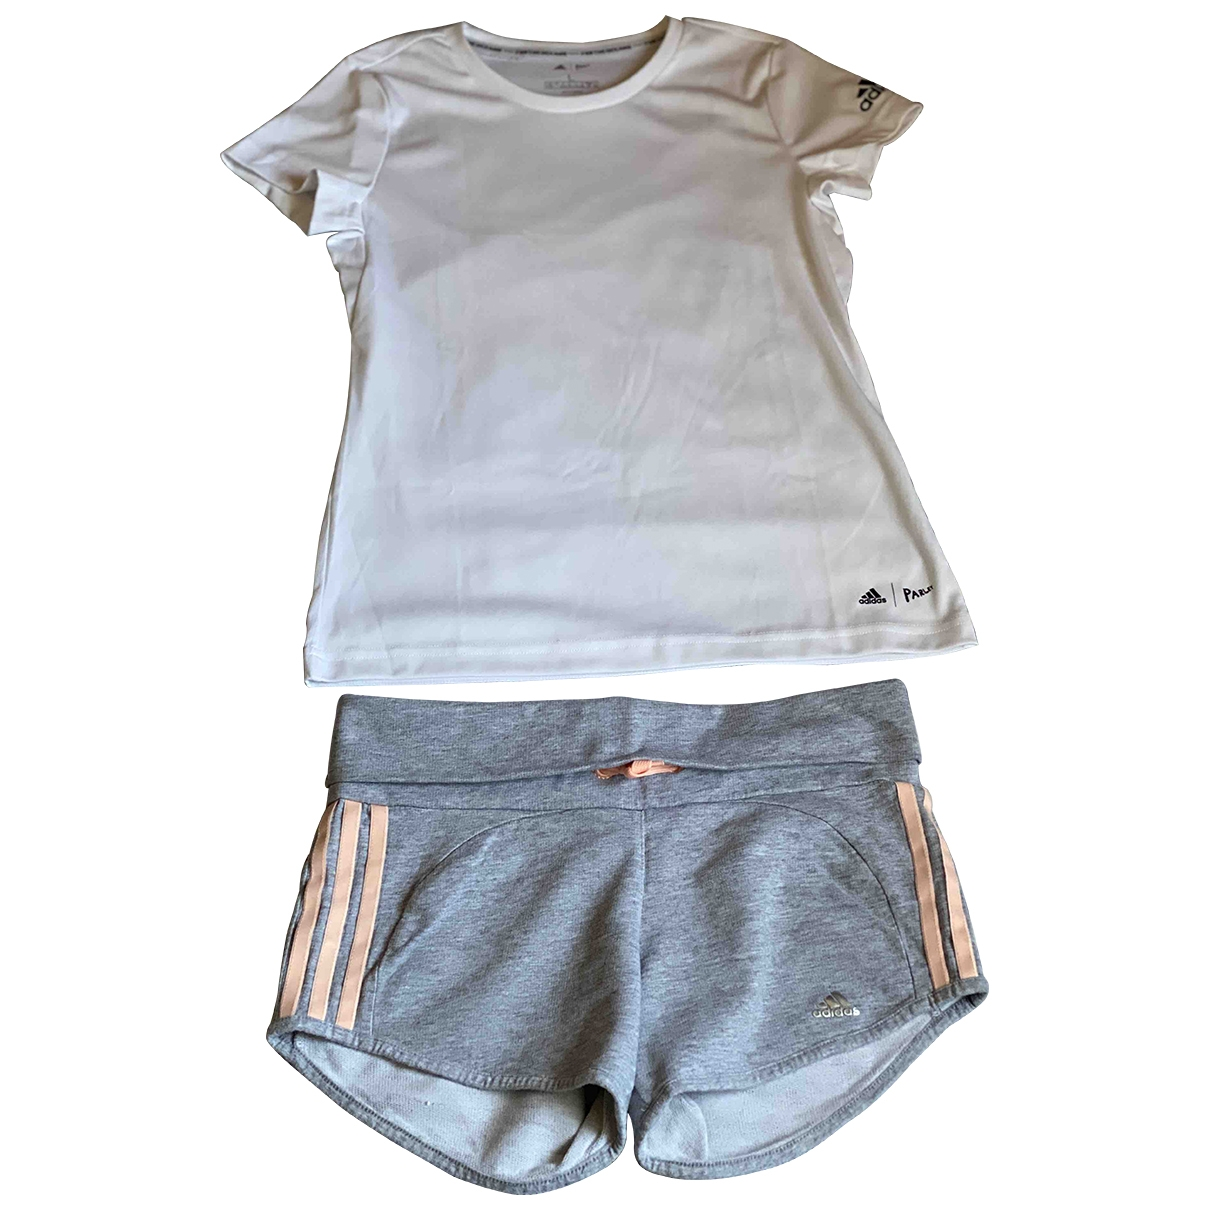 Adidas \N Multicolour Outfits for Kids 12 years - XS FR